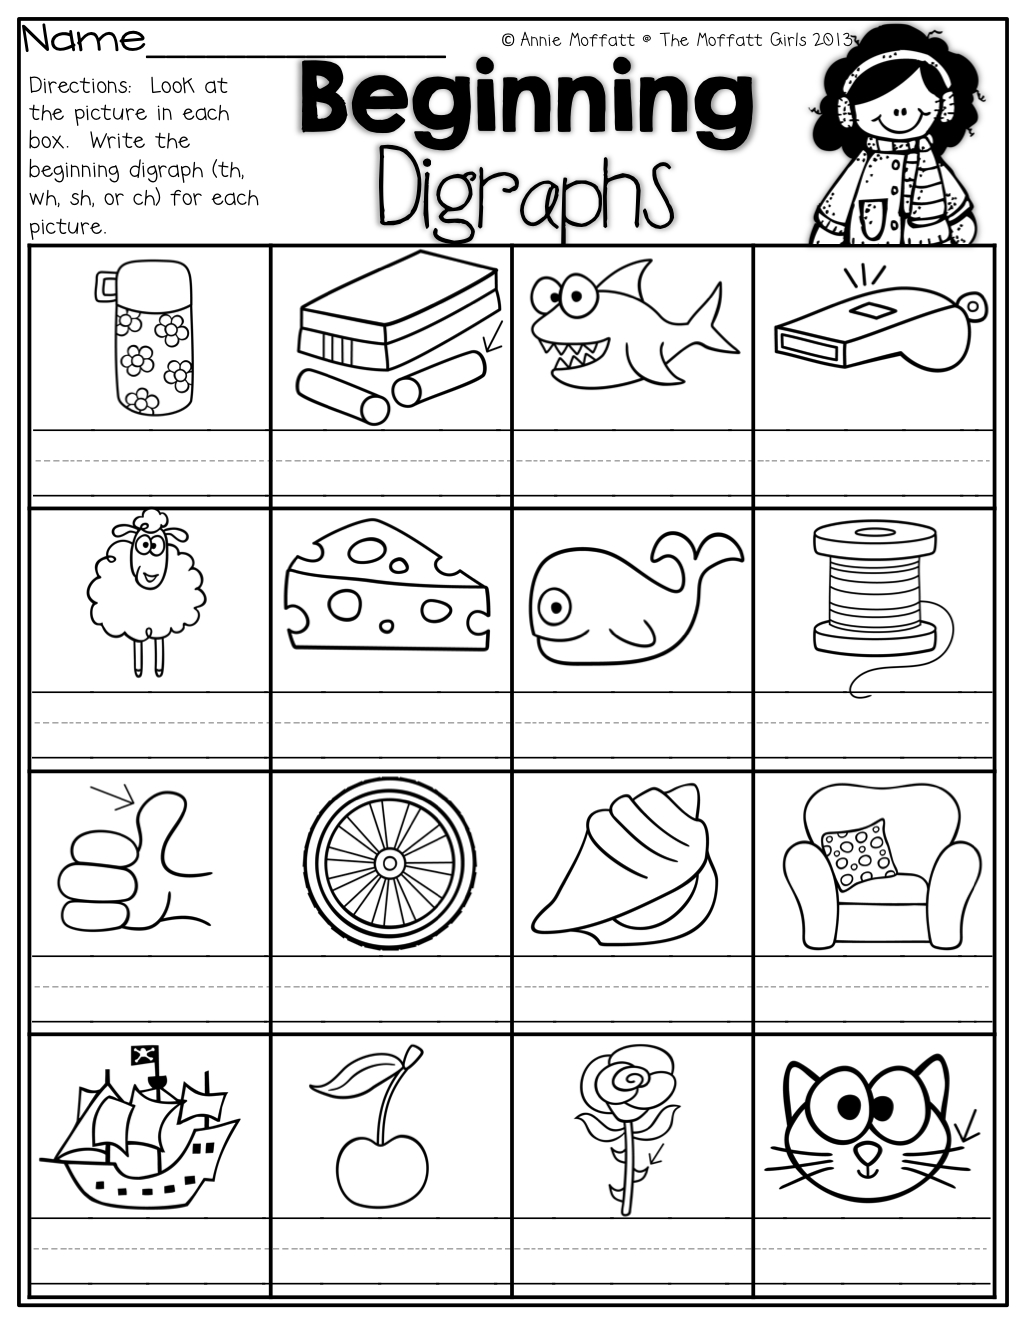 hight resolution of Digraph Worksheets Sh Ch   Printable Worksheets and Activities for  Teachers